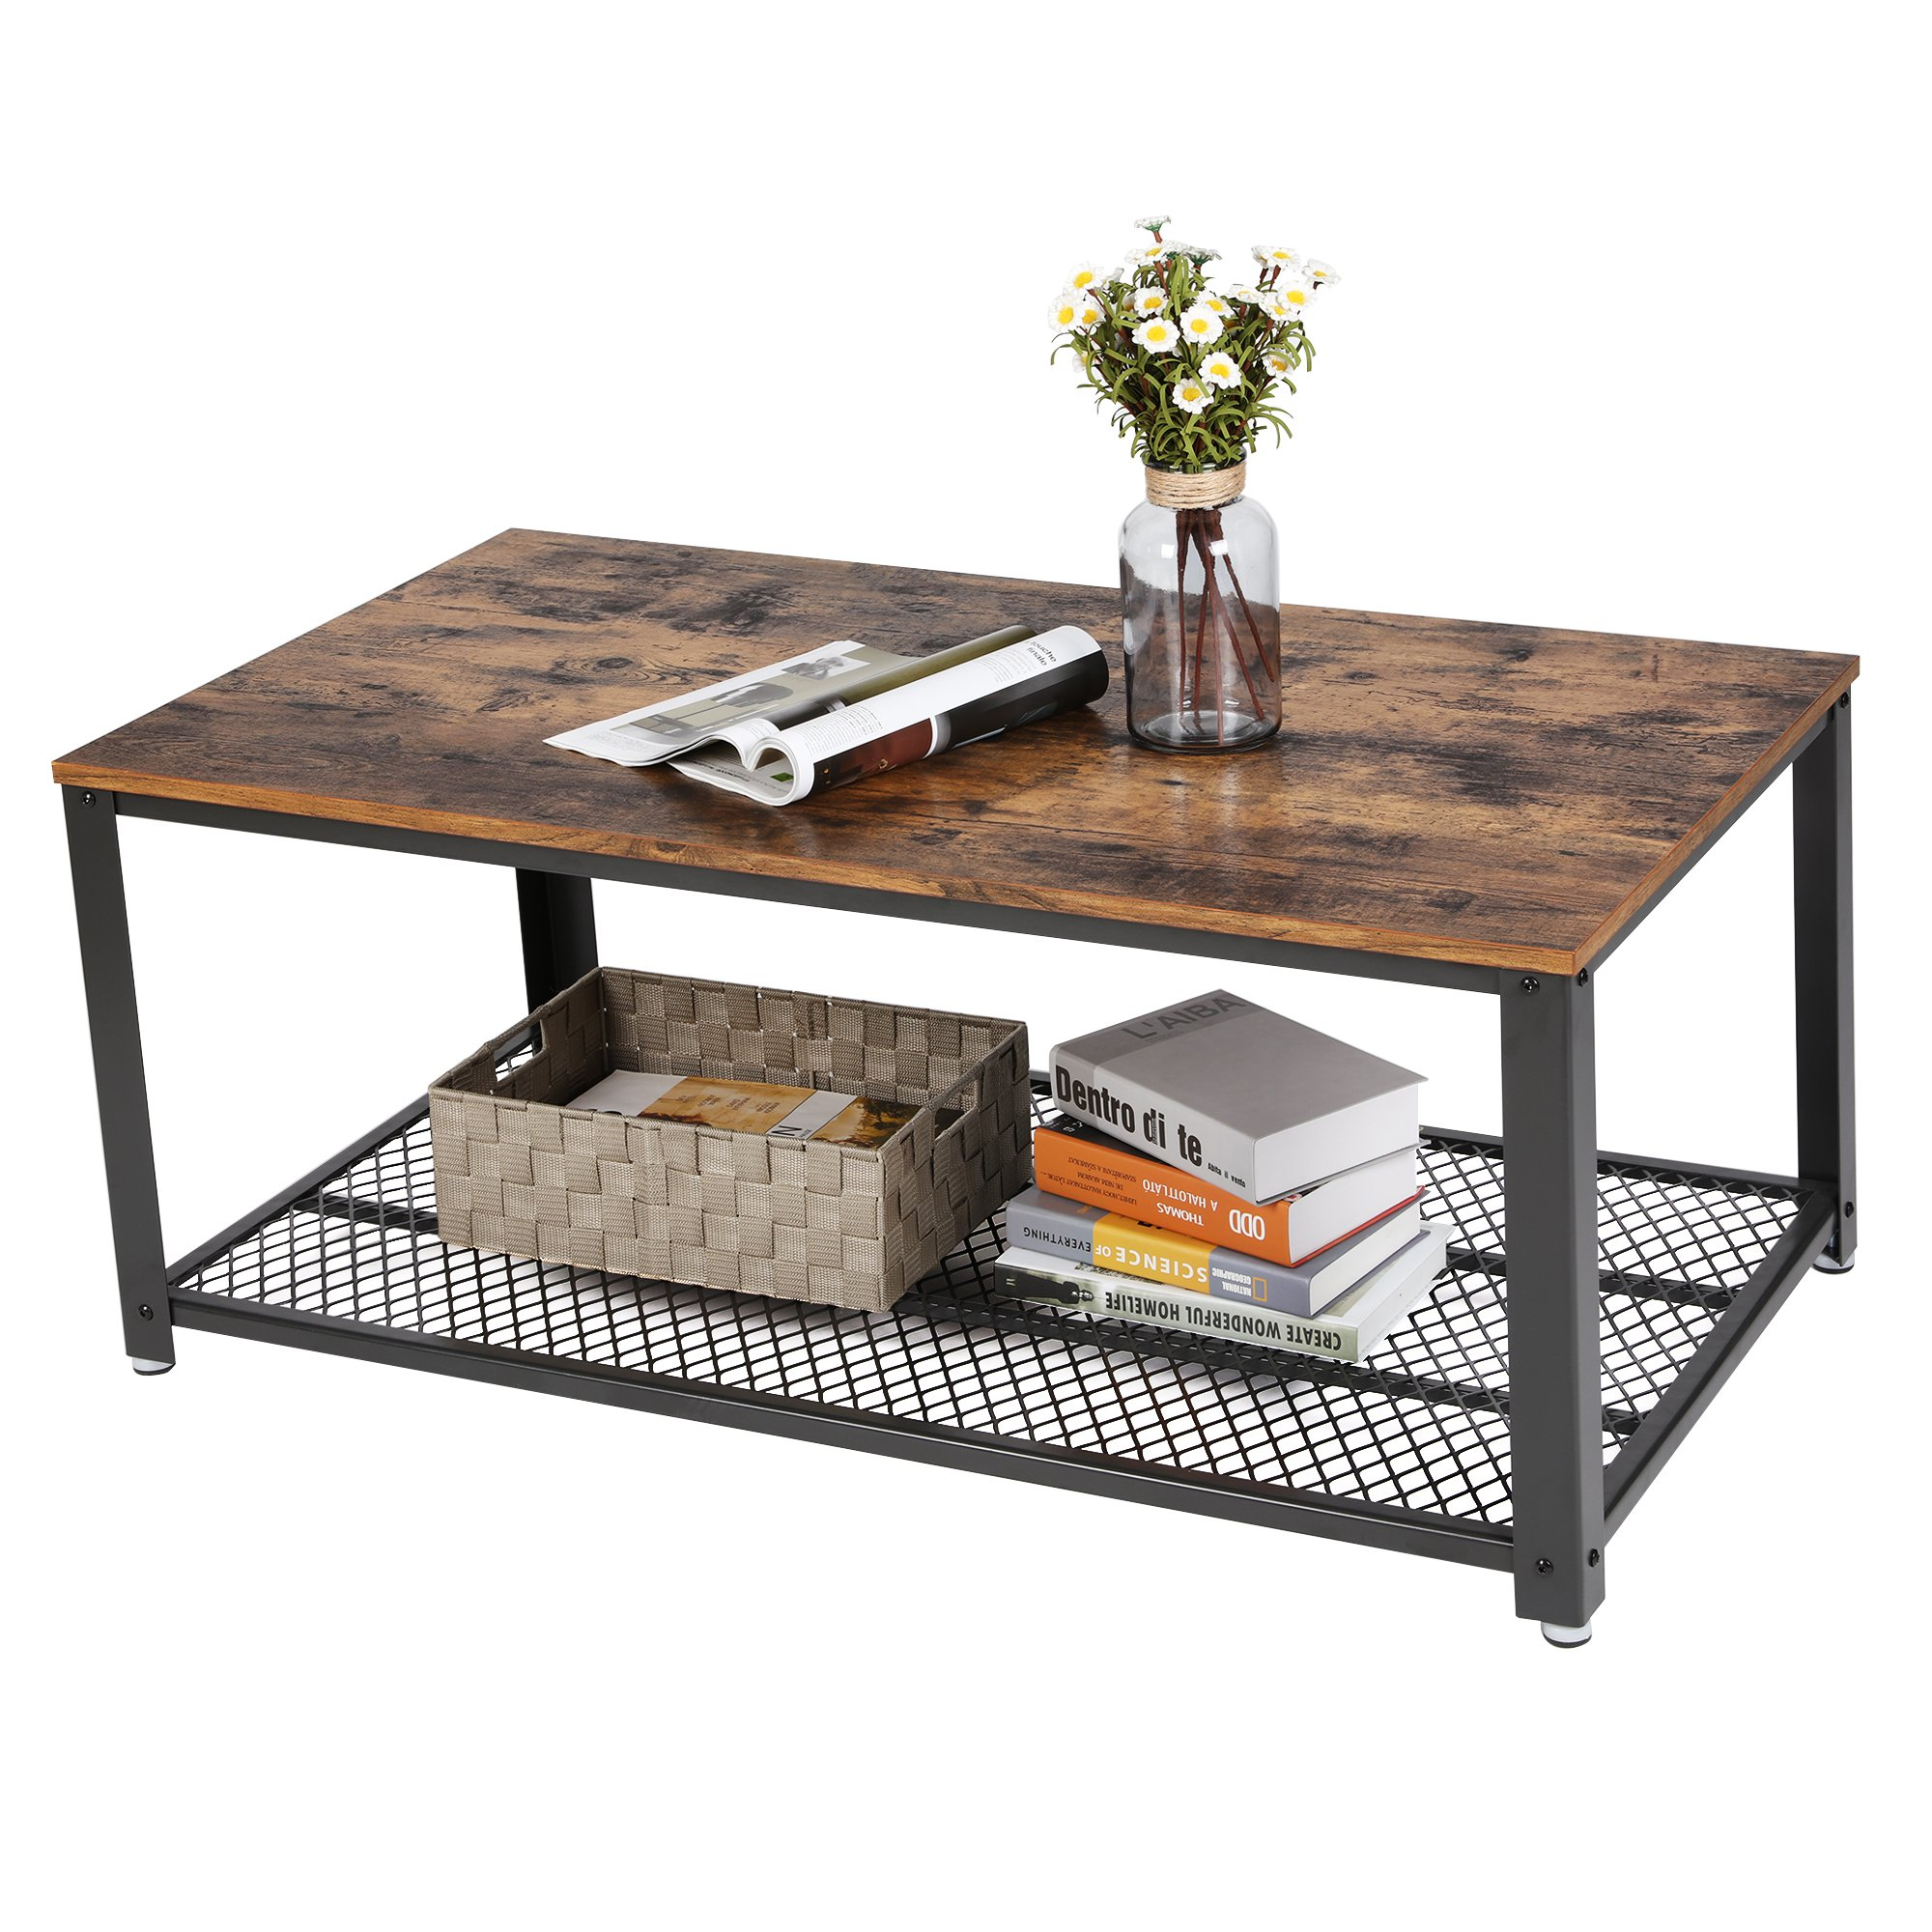 SONGMICS Vintage Coffee Table, Cocktail Table with Storage Shelf for Living Room, Wood Look Accent Furniture with Metal Frame, Easy Assembly ULCT61X by SONGMICS (Image #3)